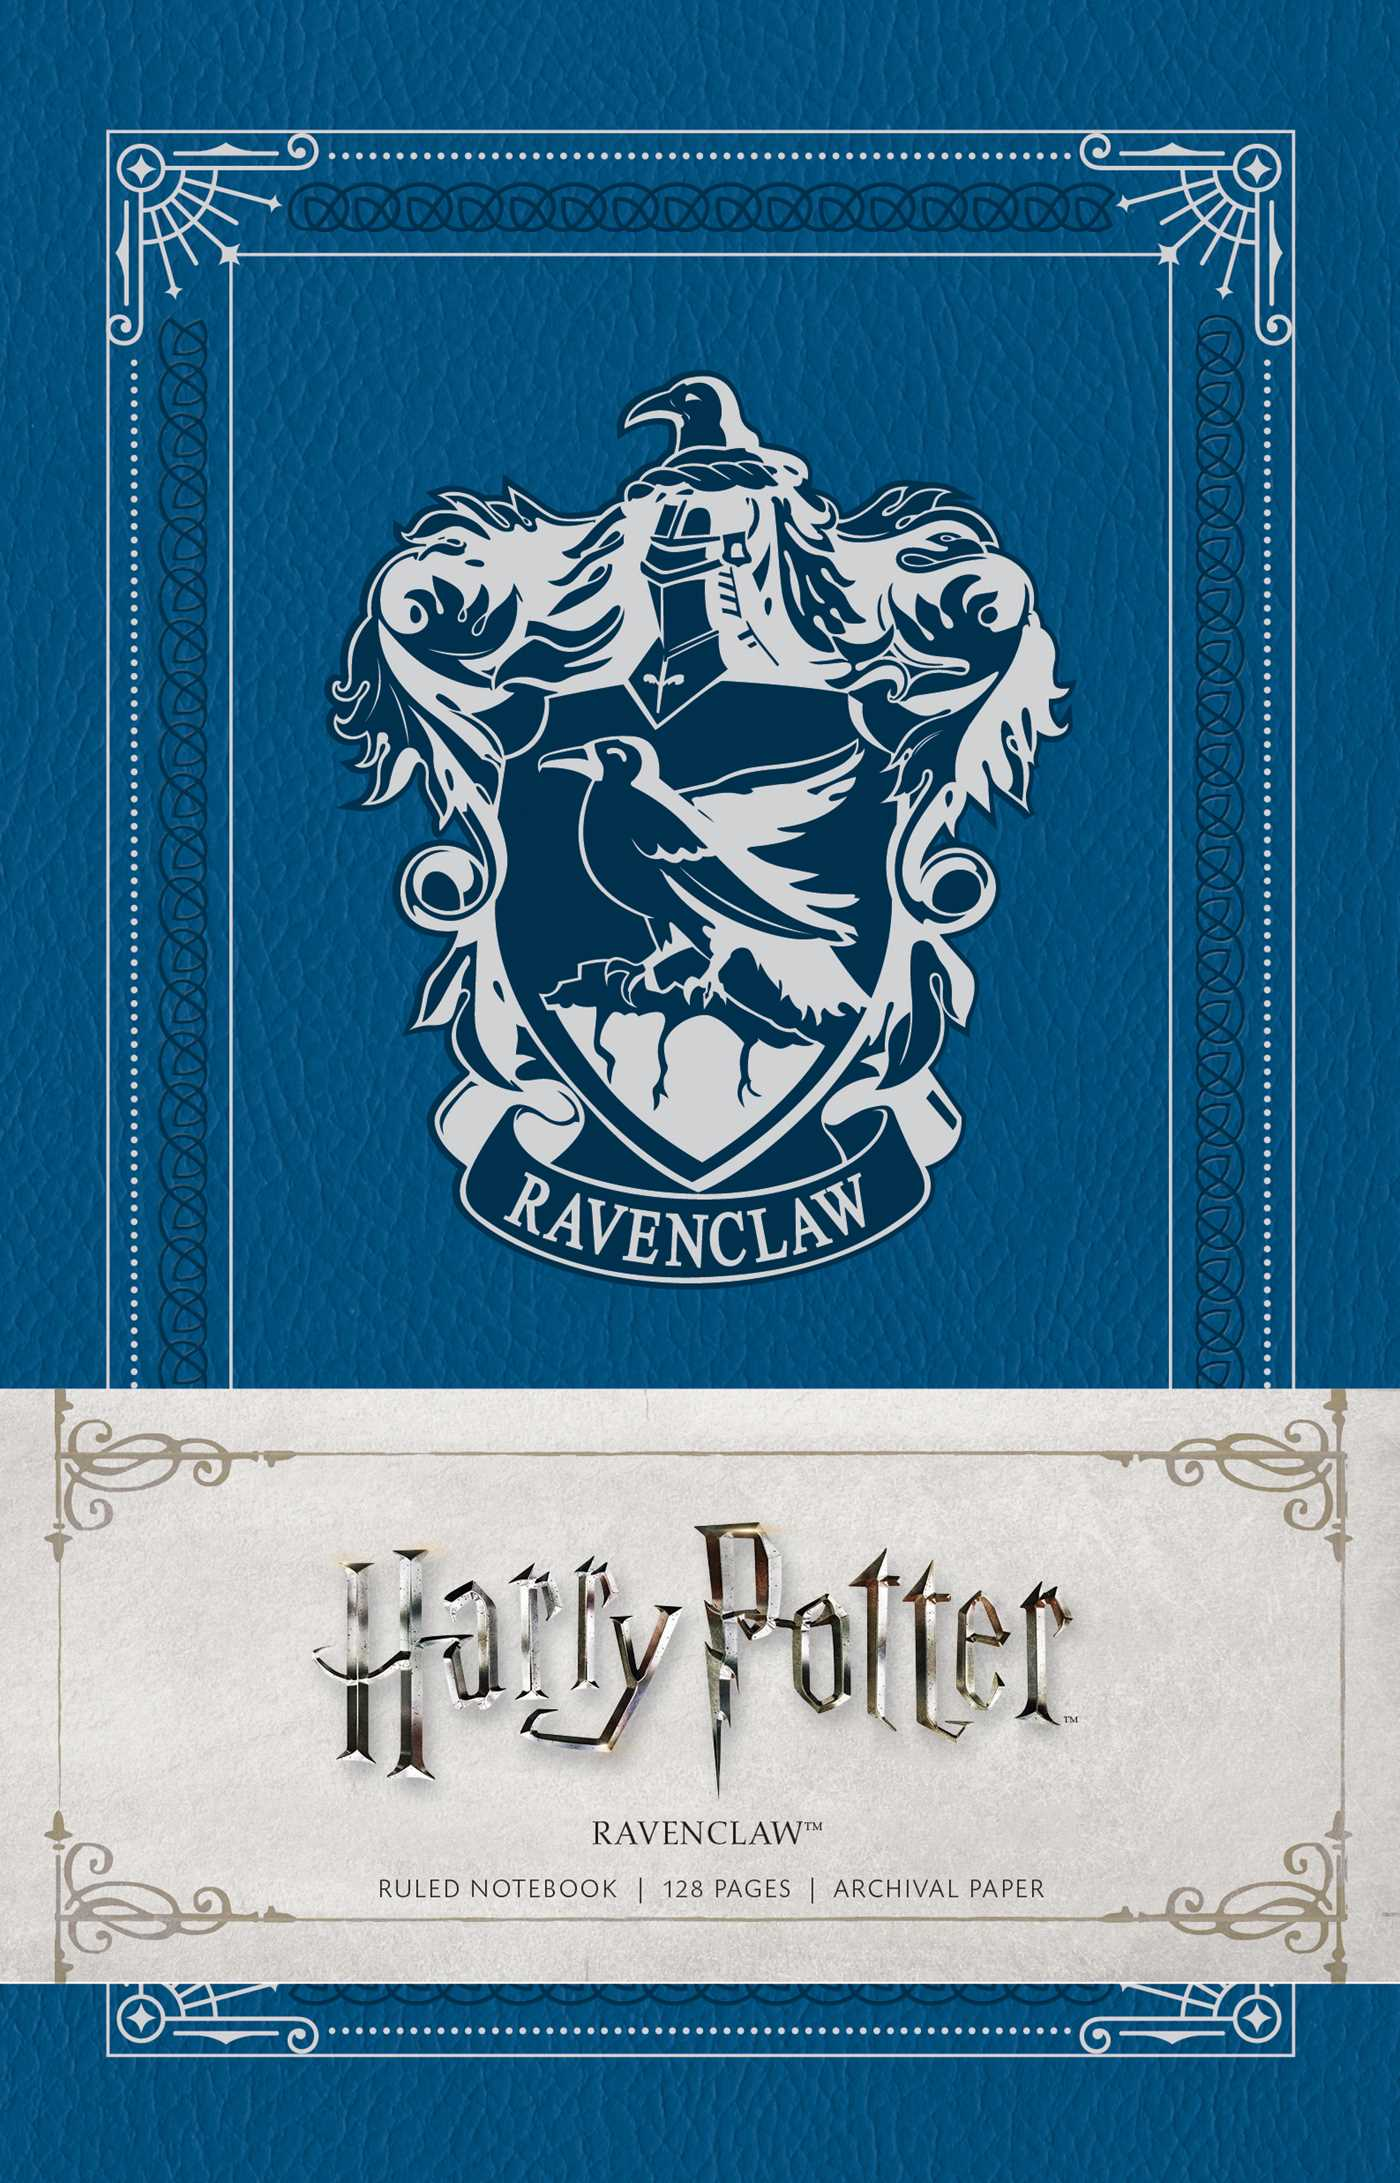 Harry potter ravenclaw ruled notebook book by insight editions harry potter ravenclaw ruled notebook 9781683832713 hr fandeluxe Image collections